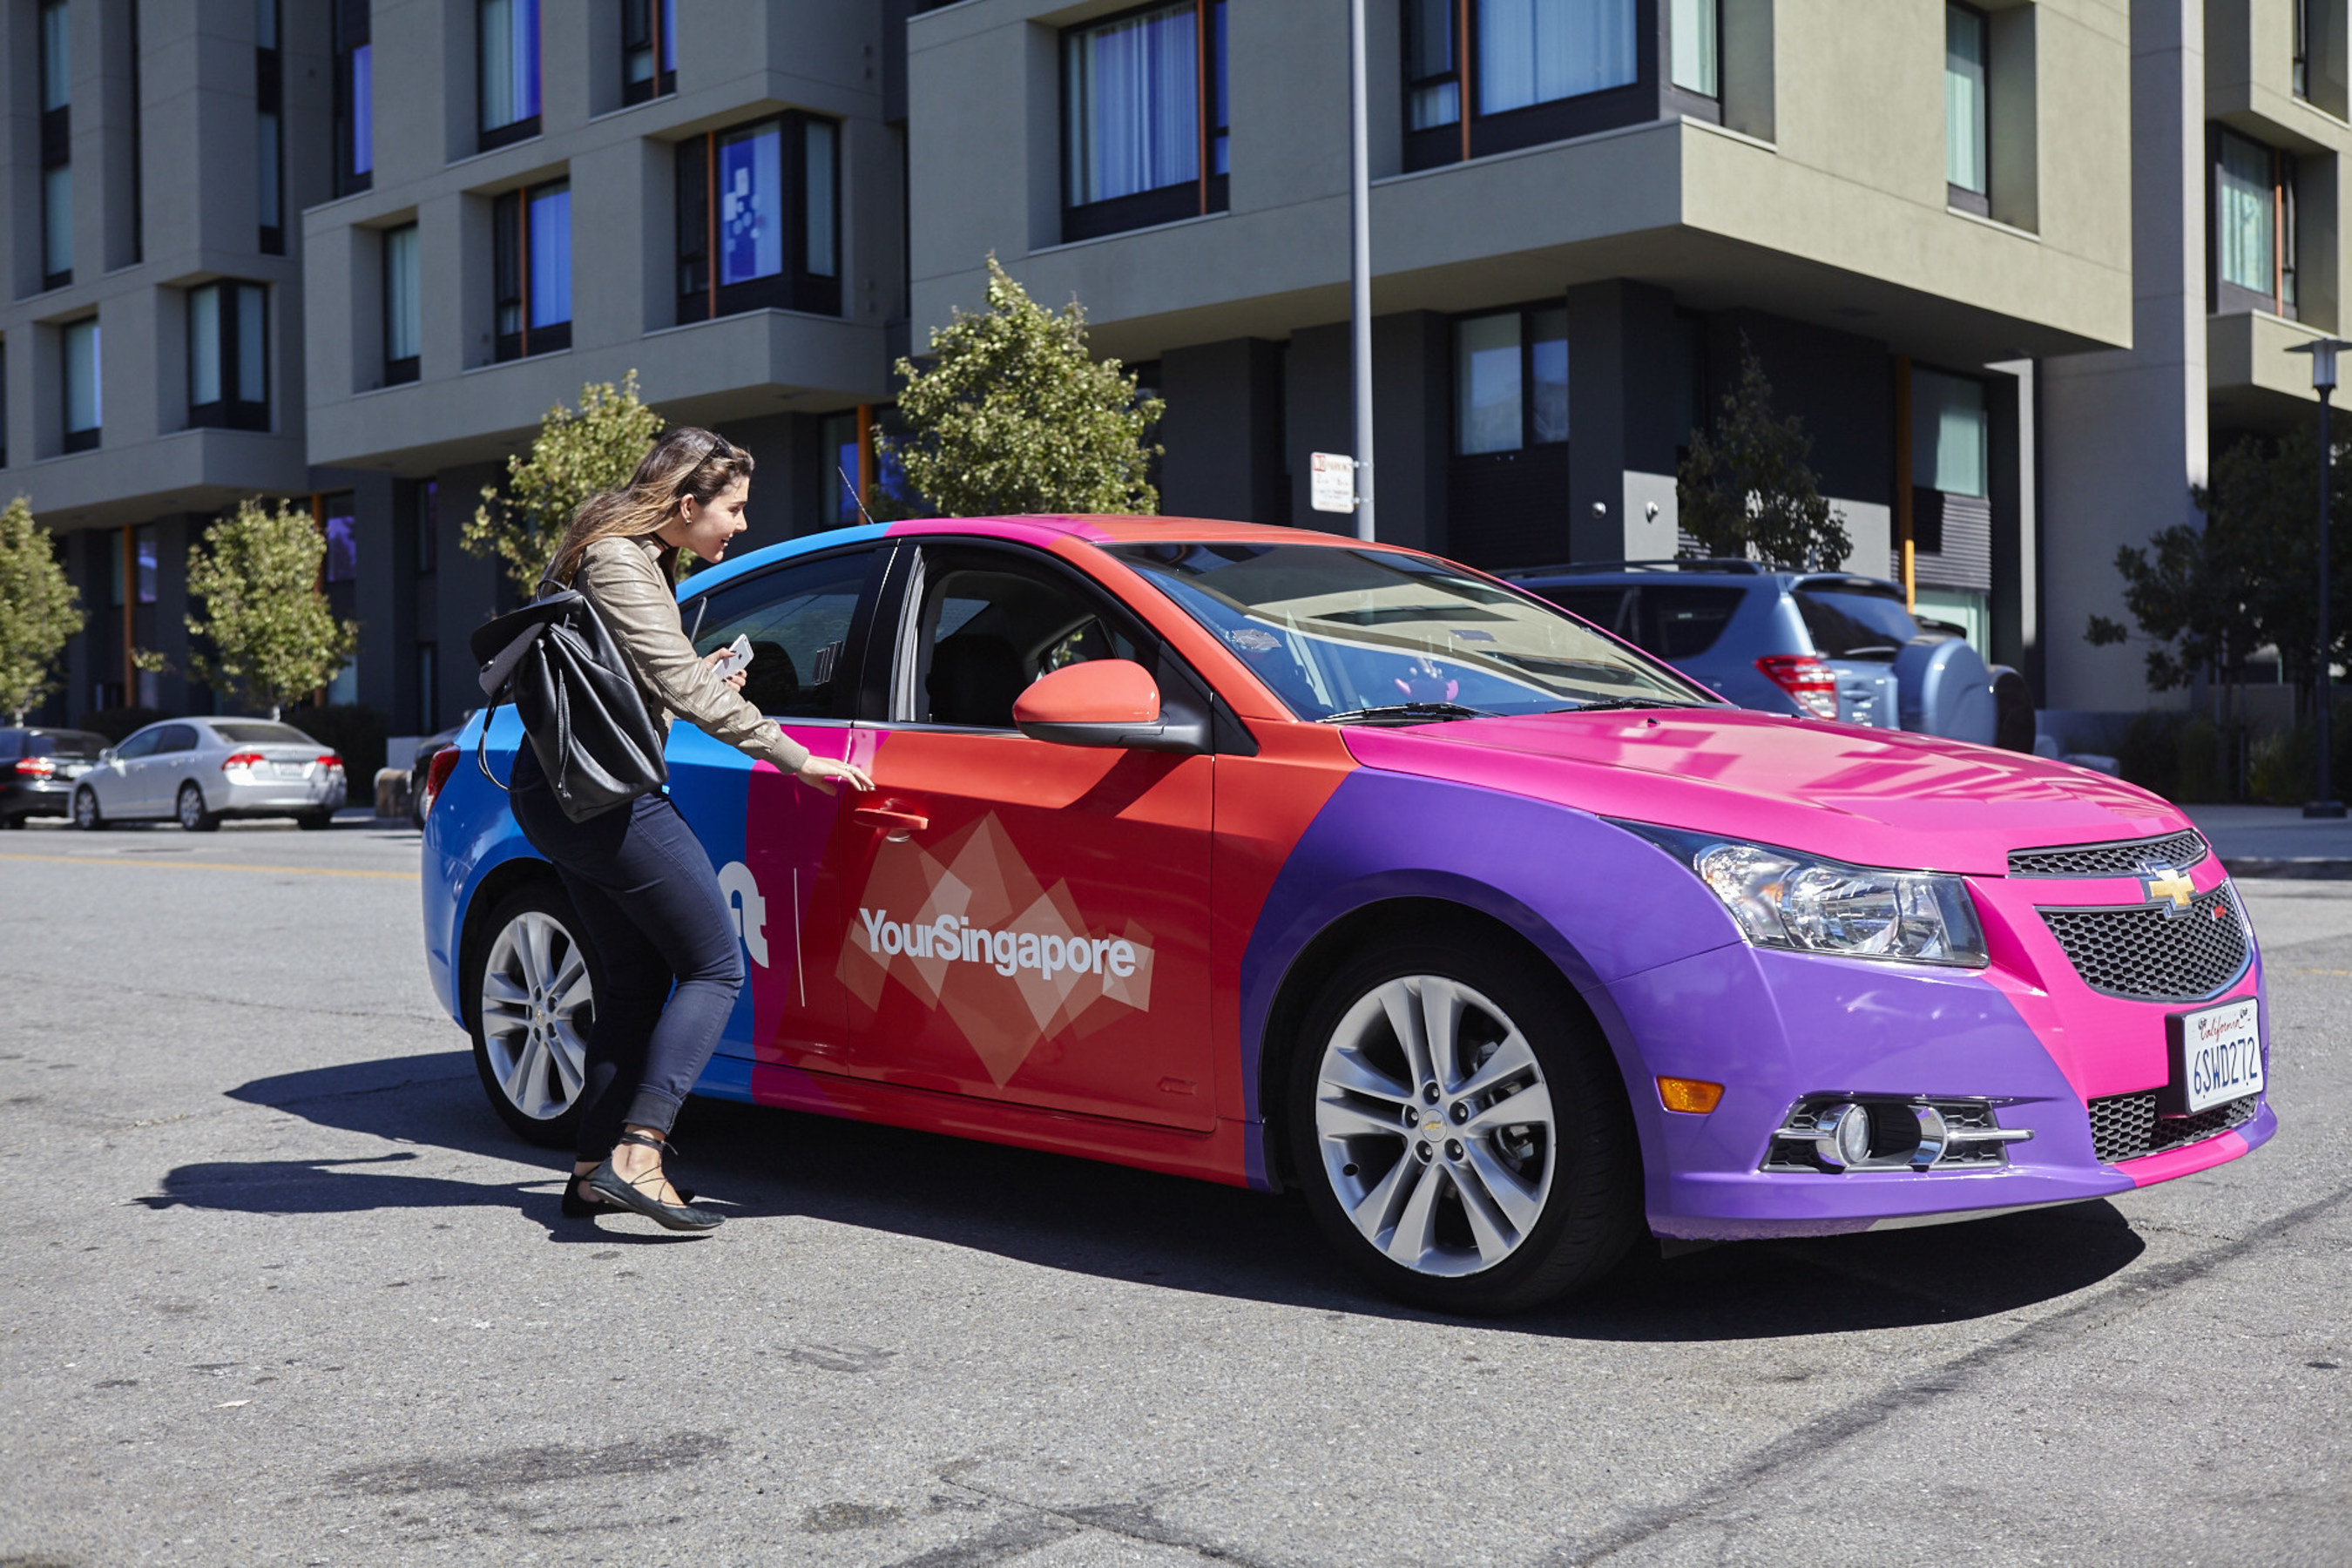 Singapore Tourism Board Forges Partnerships With Lyft And Pandora To Promote Destination Awareness In The U.S.